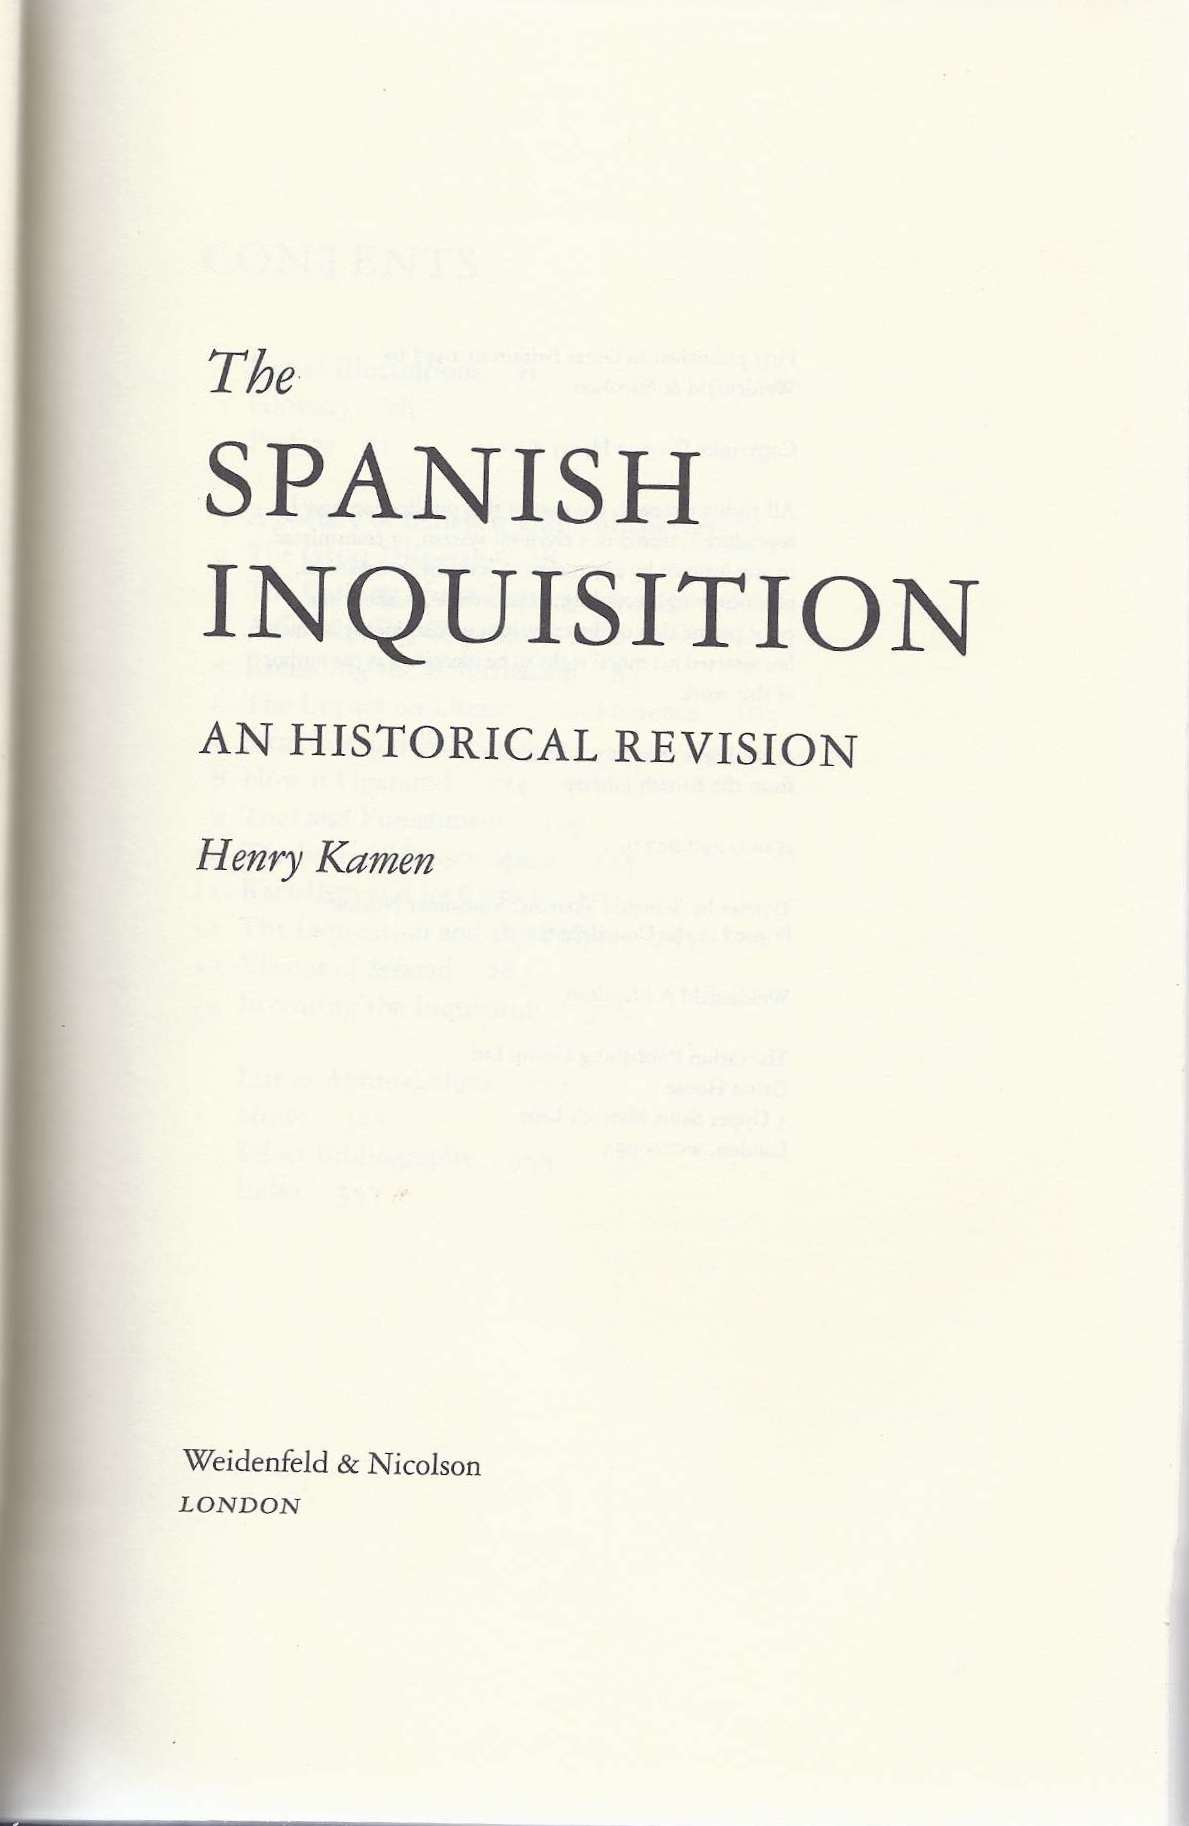 history of the spanish inquisition essay